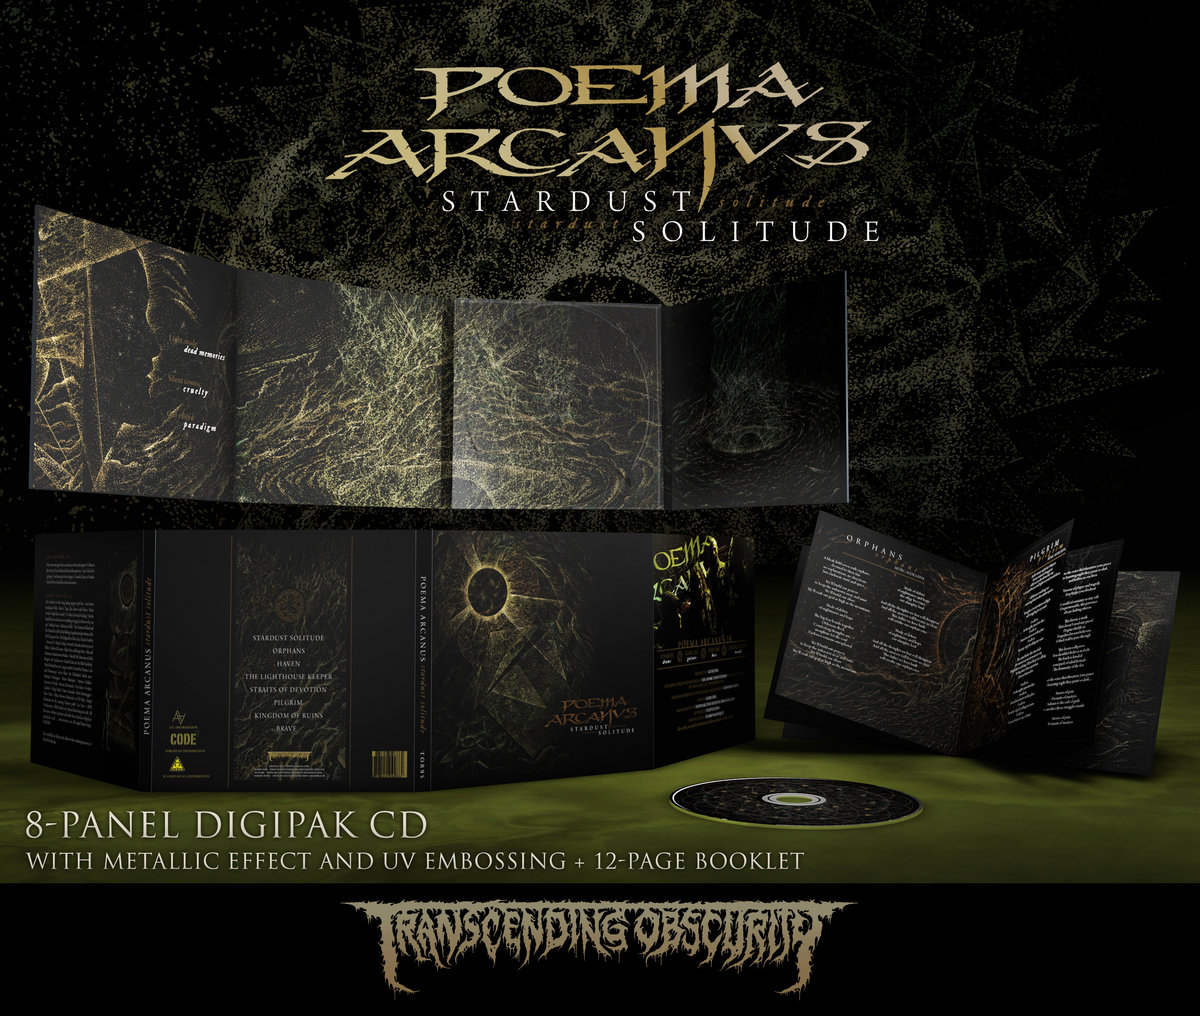 POEMA ARCANVS - 8-Panel Digipak CD with Metallic/UV Effect and 12-Page Booklet